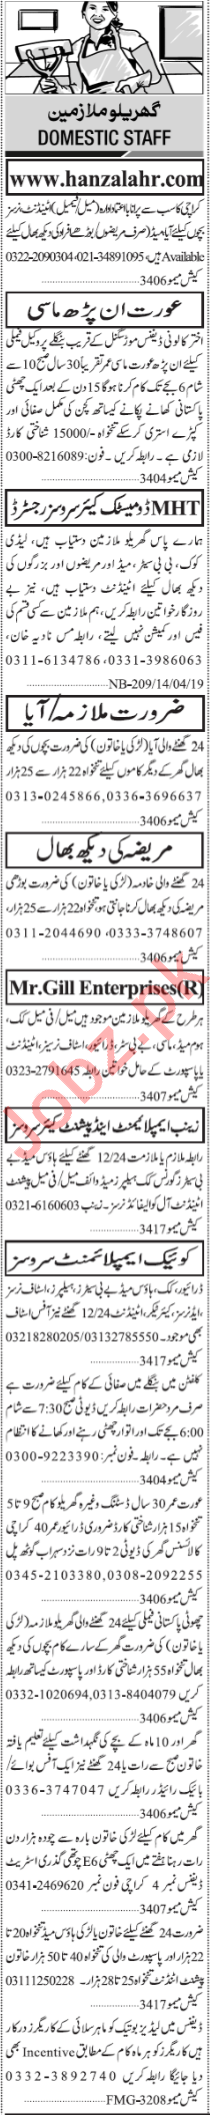 Jang Sunday Classified Ads 14th April 2019 for House Staff